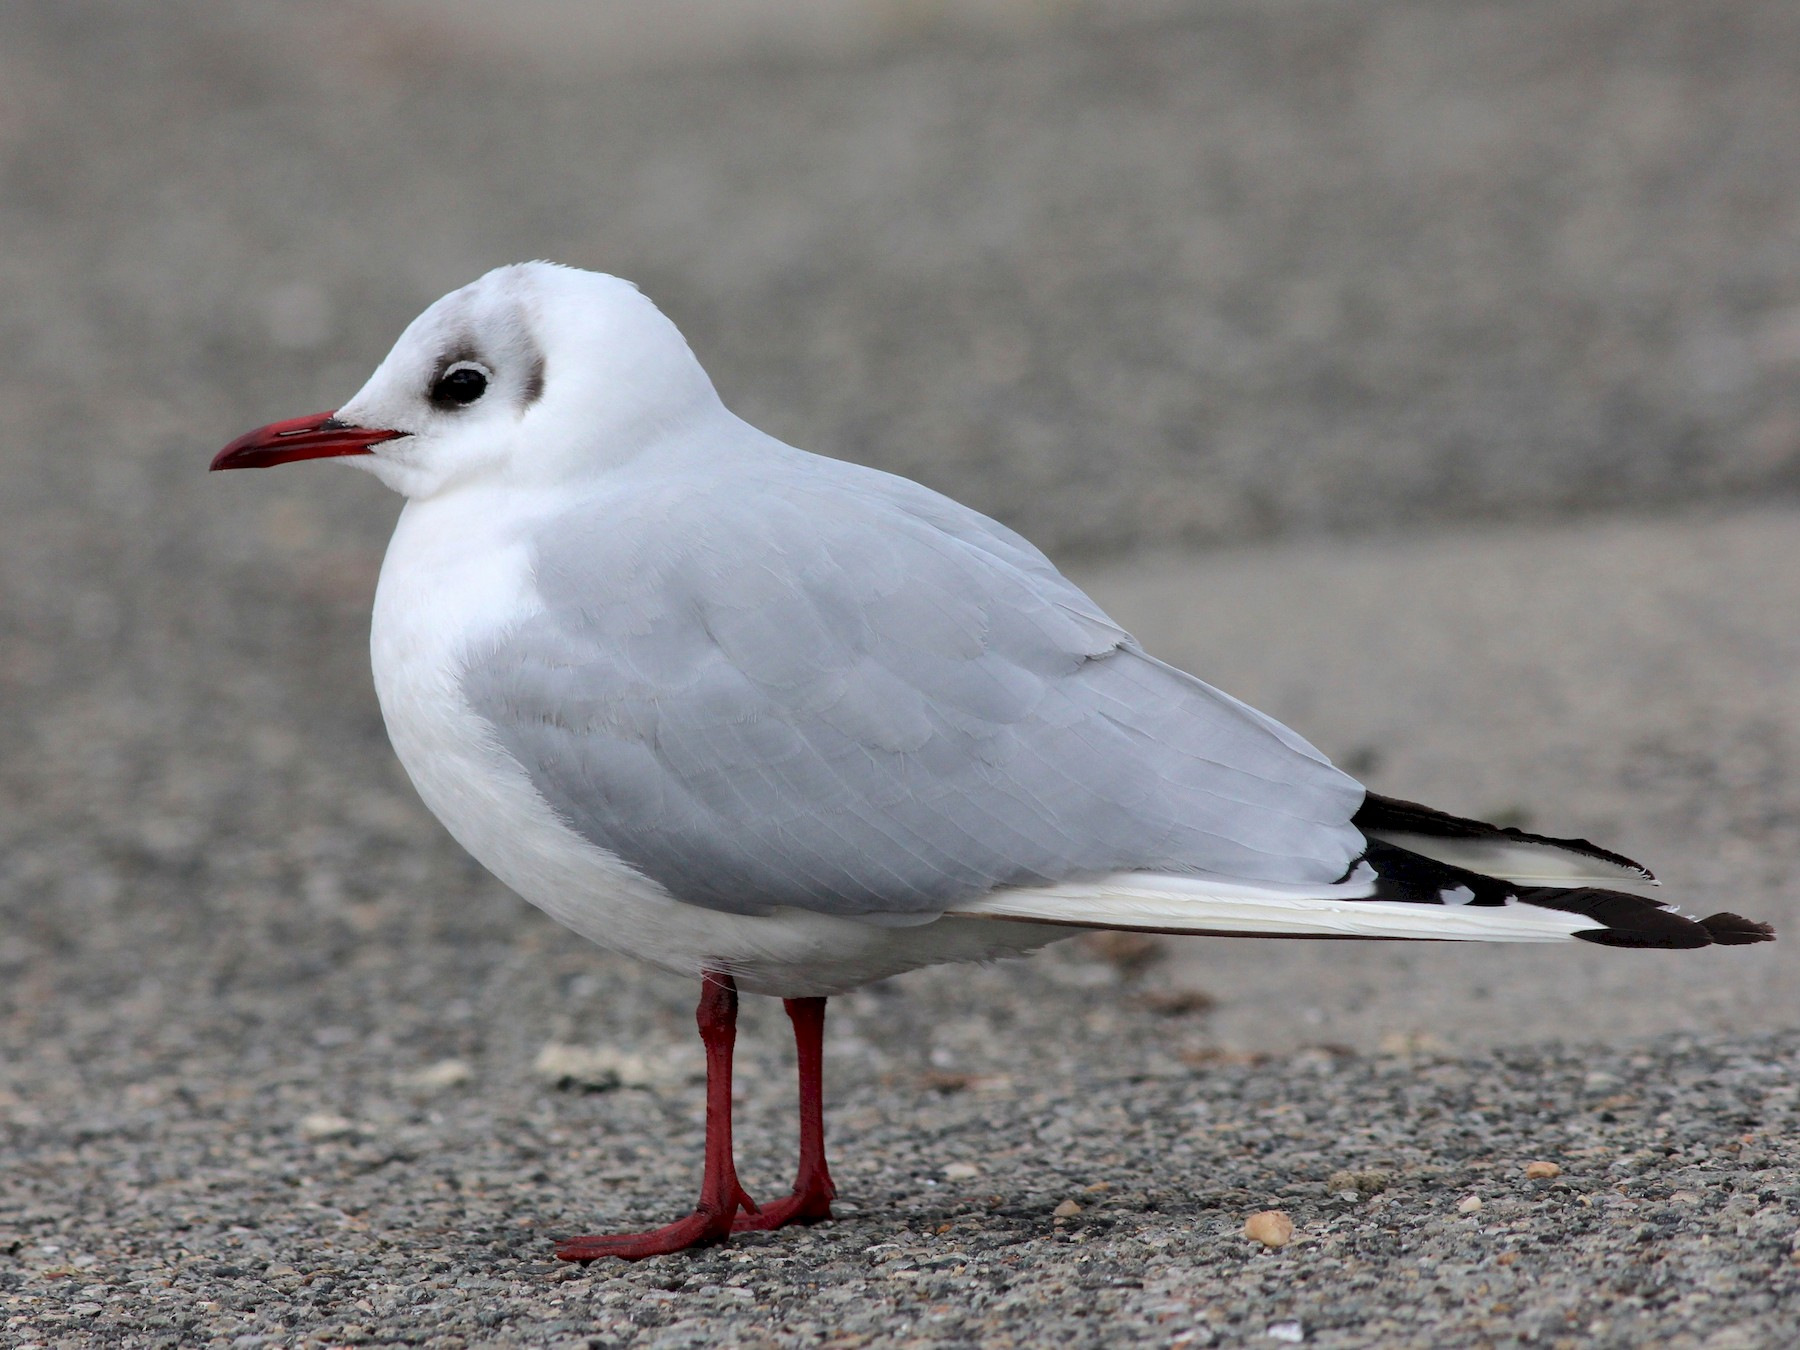 Black-headed Gull - Shawn Billerman